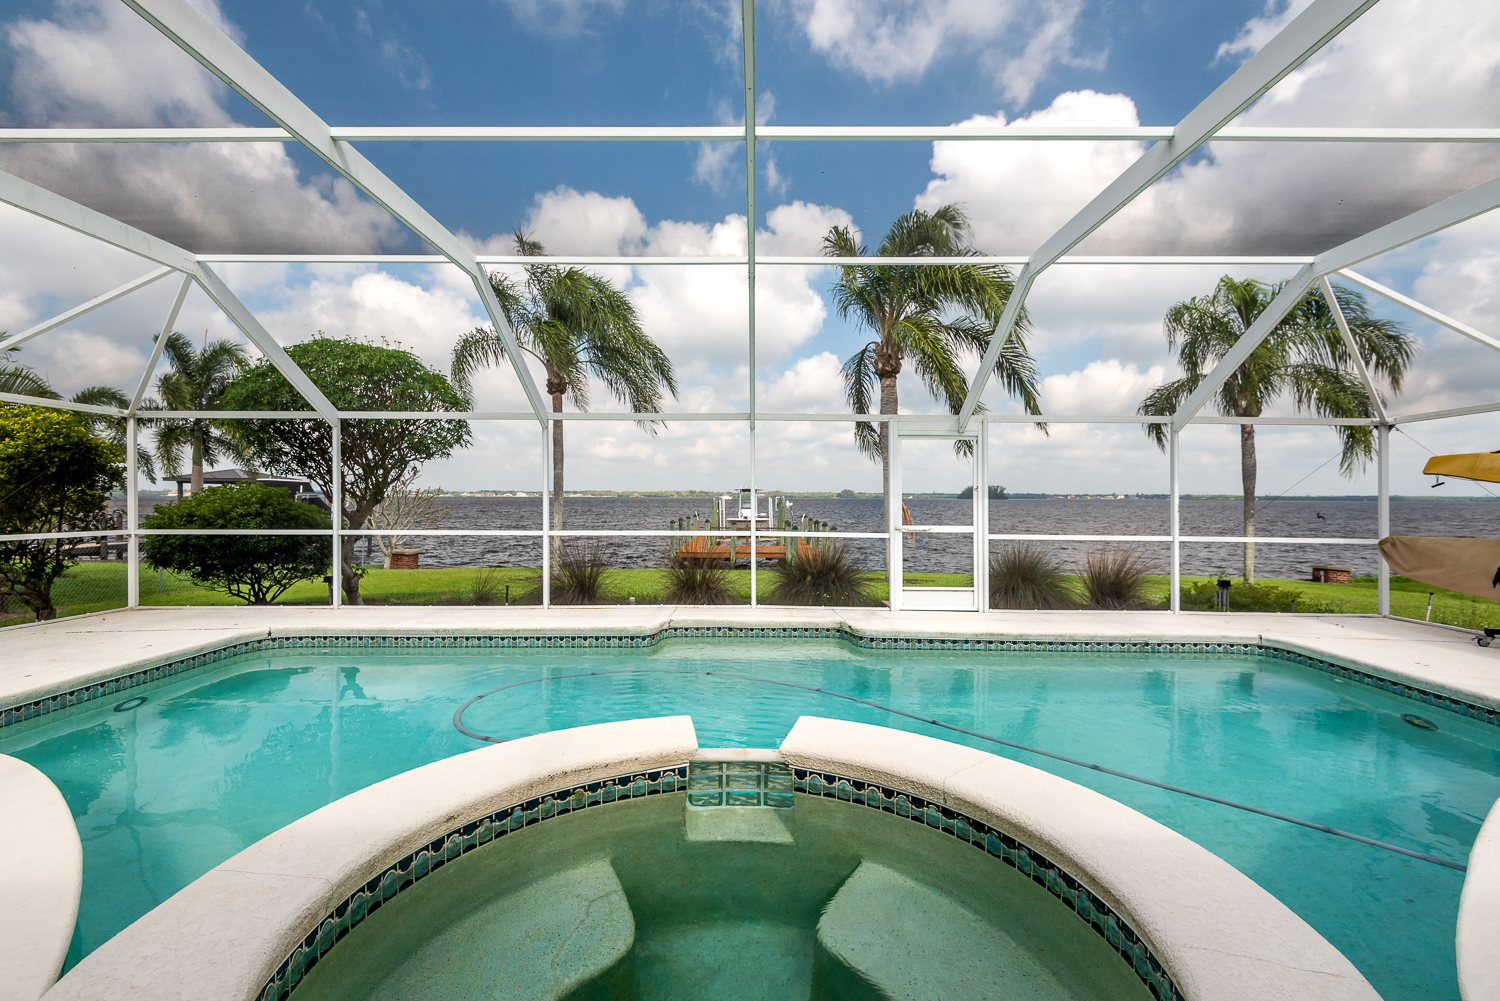 Fort-myers-fl-river-ranch-house-river-pool-screen-cage-hot-tub-pool